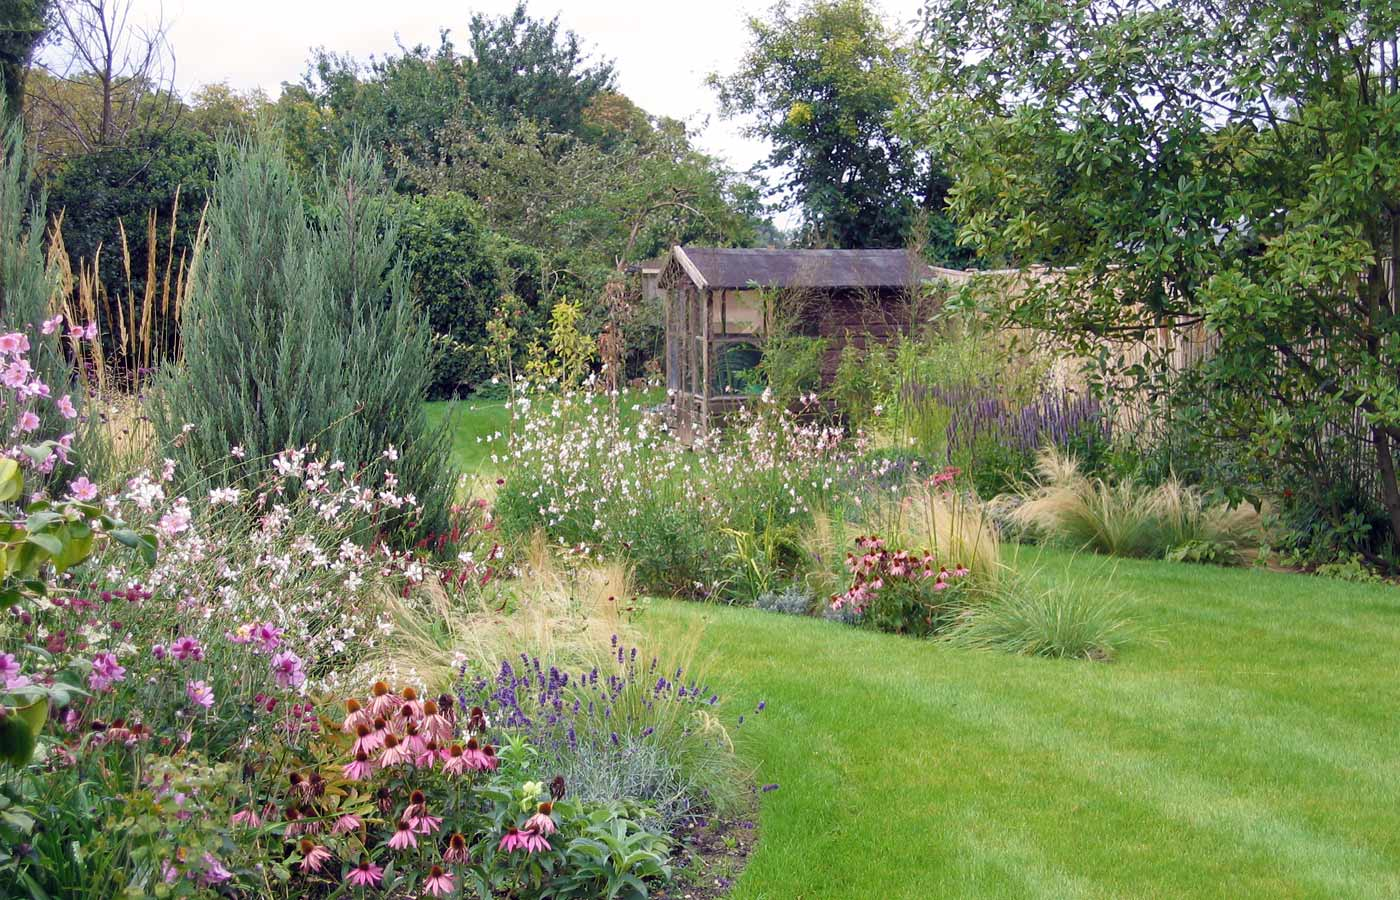 Cottage garden design garden design surrey for Garden design ideas photos